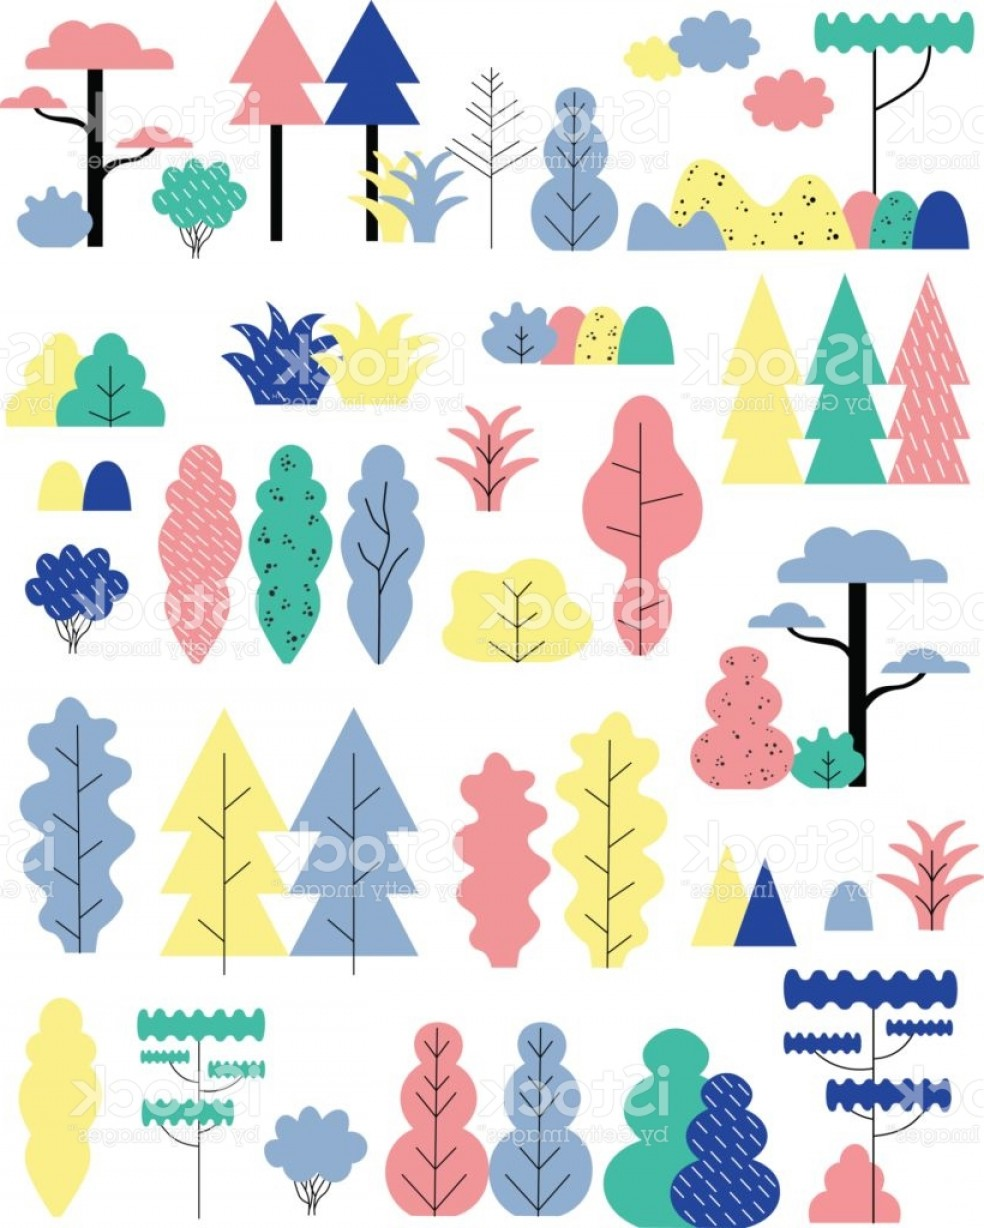 Flat Vector Art And Abstract Forest: Set Of Flat Abstract Forest Elements Vector Illustration Gm